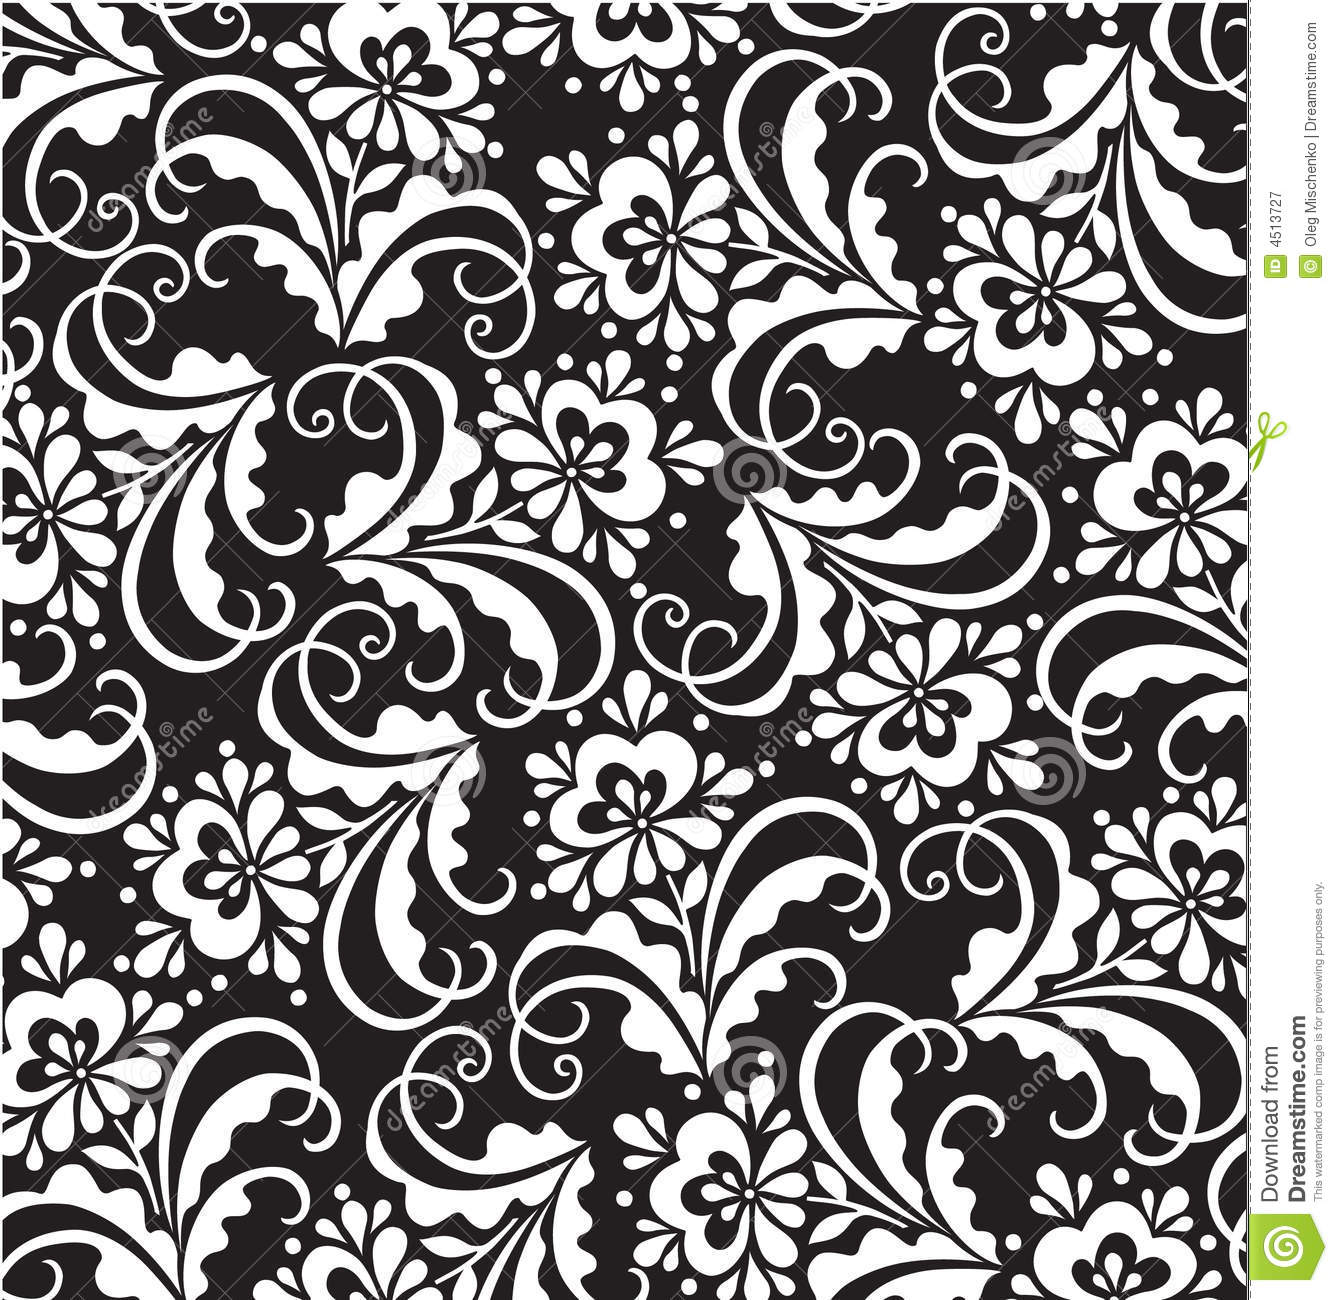 Vector floral patterns stock vector. Illustration of ...